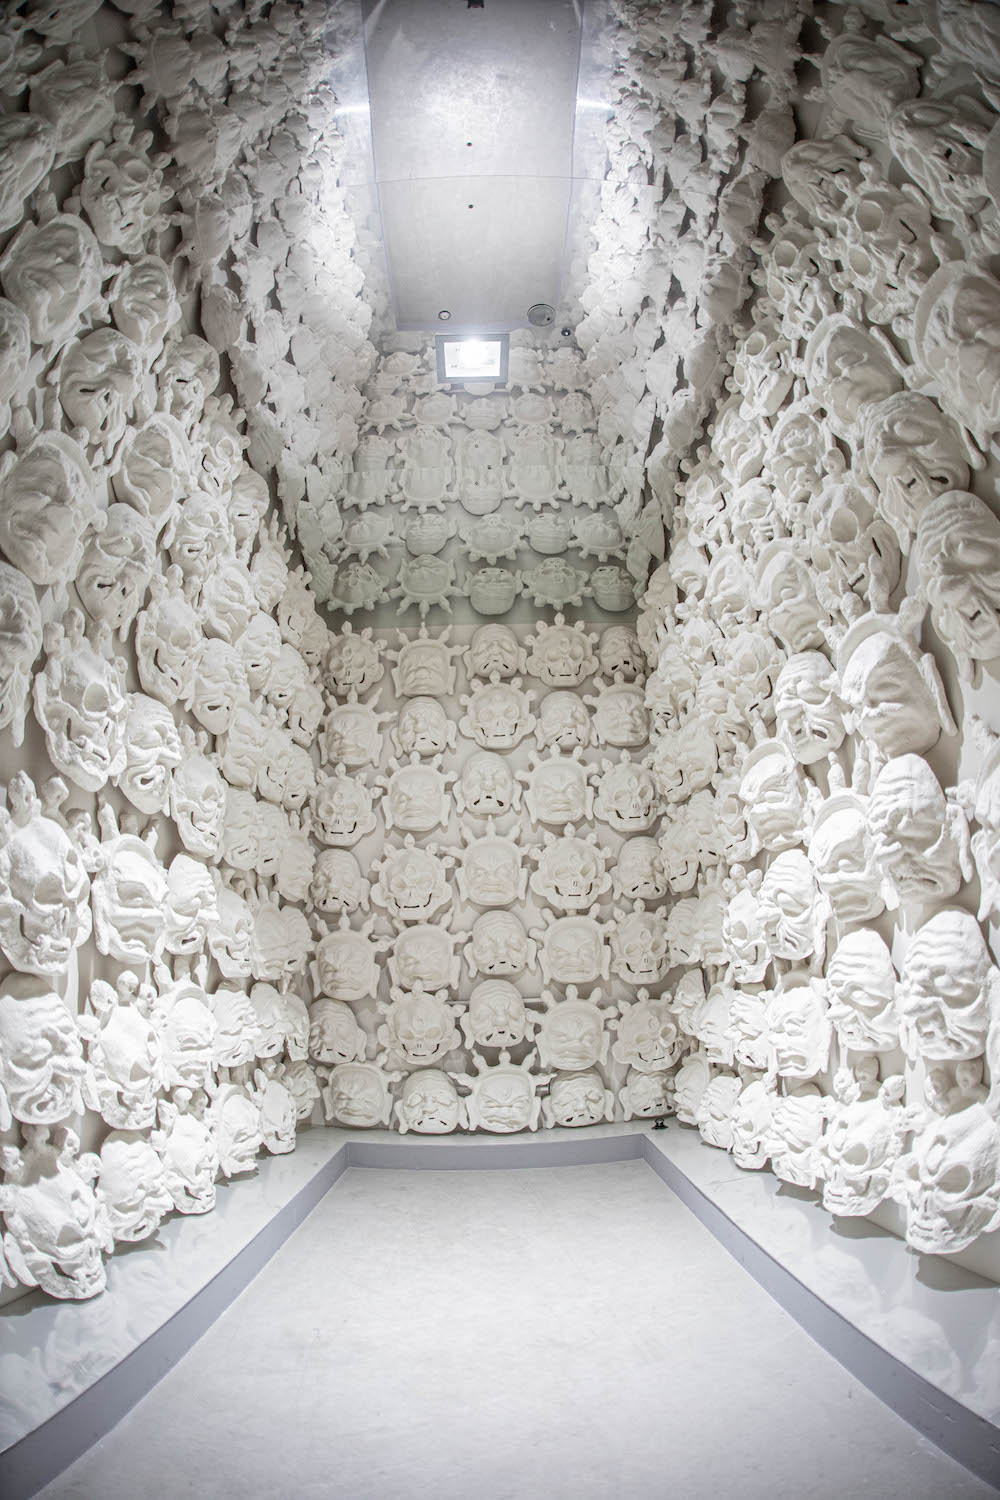 Room full of white faces made out of clay